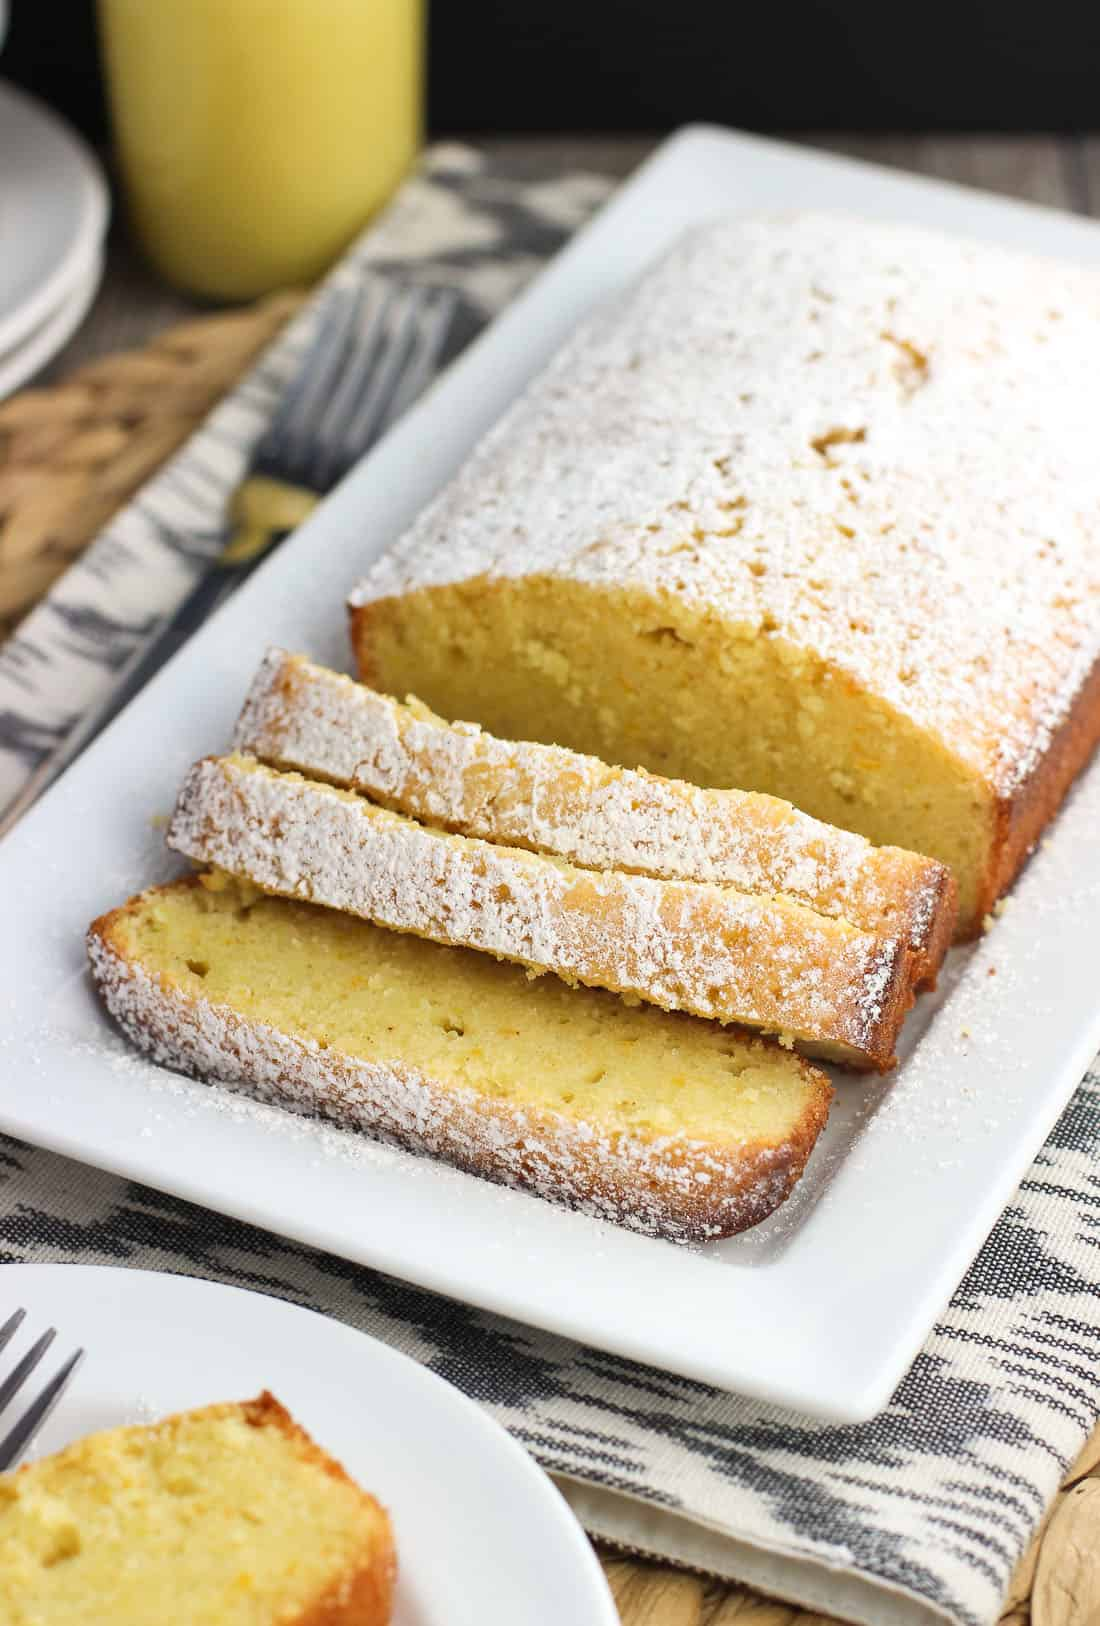 A loaf of pound cake on a tray, dusted with confectioners' sugar and cut into three slices